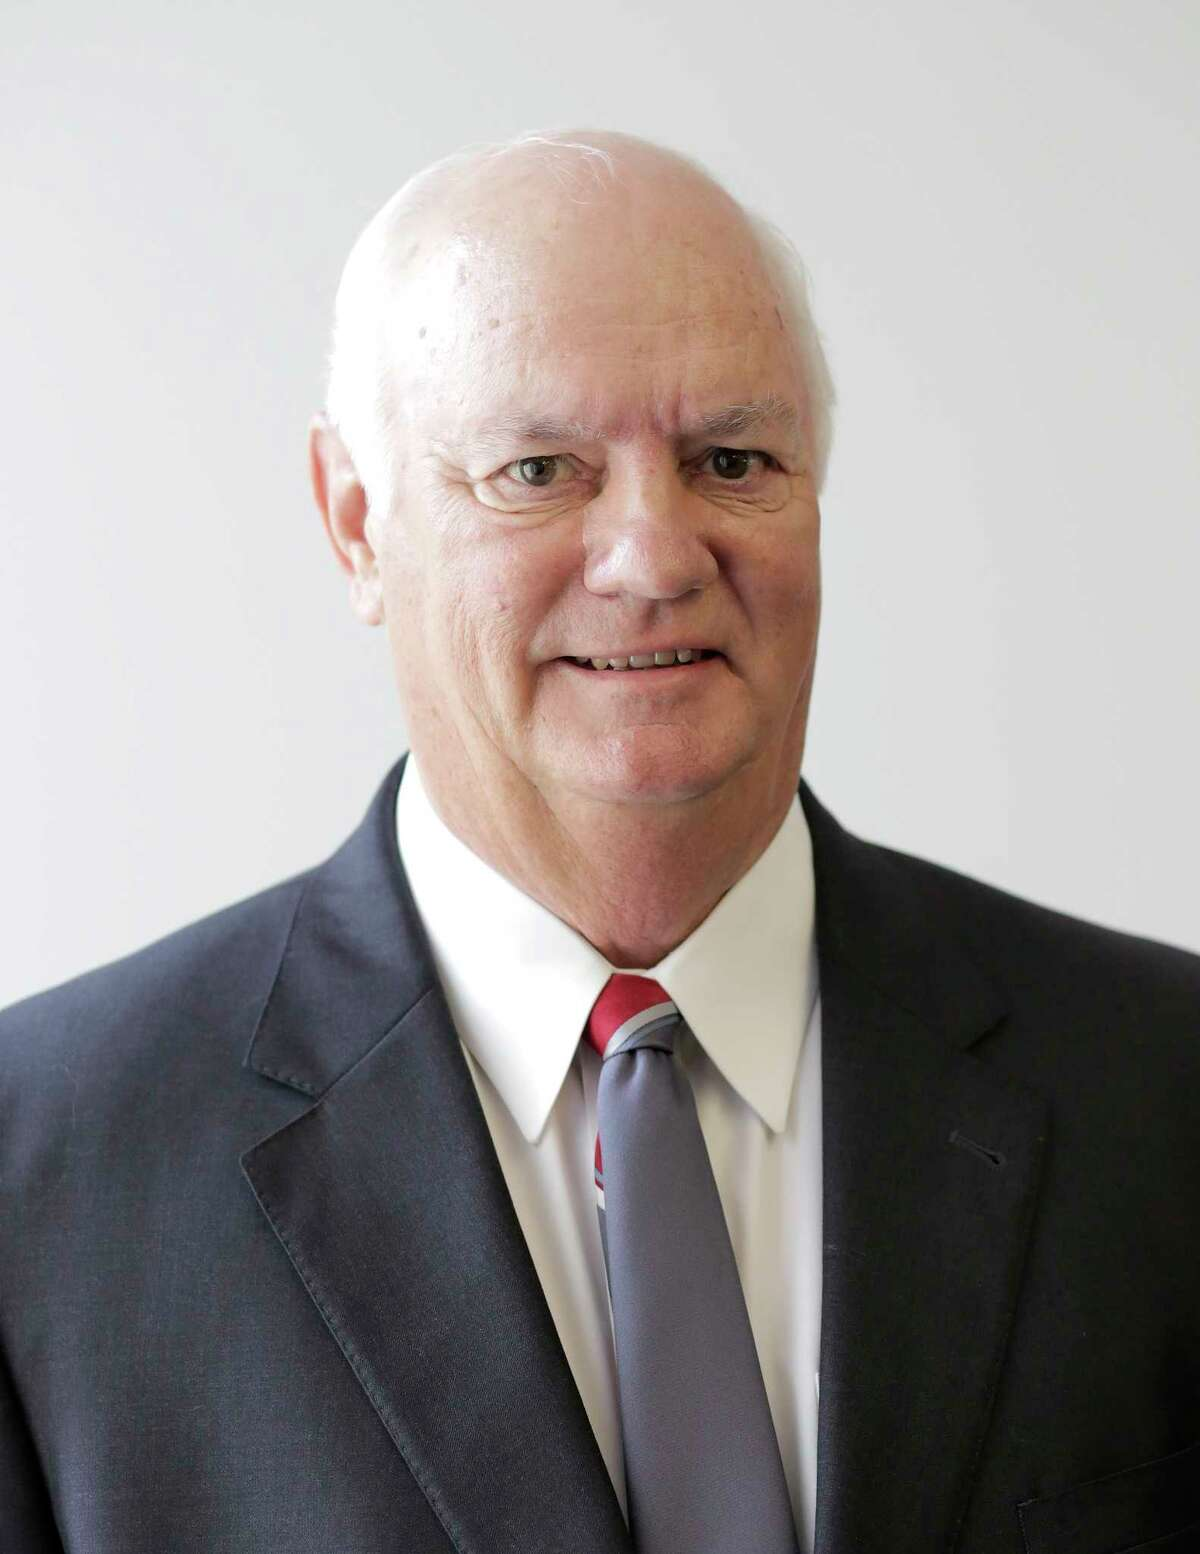 Headshot of Fort Bend DA candidate Cliff Vacek (R) before they meeting with the Editorial Board on Wednesday, Sept. 5, 2018 in Houston.